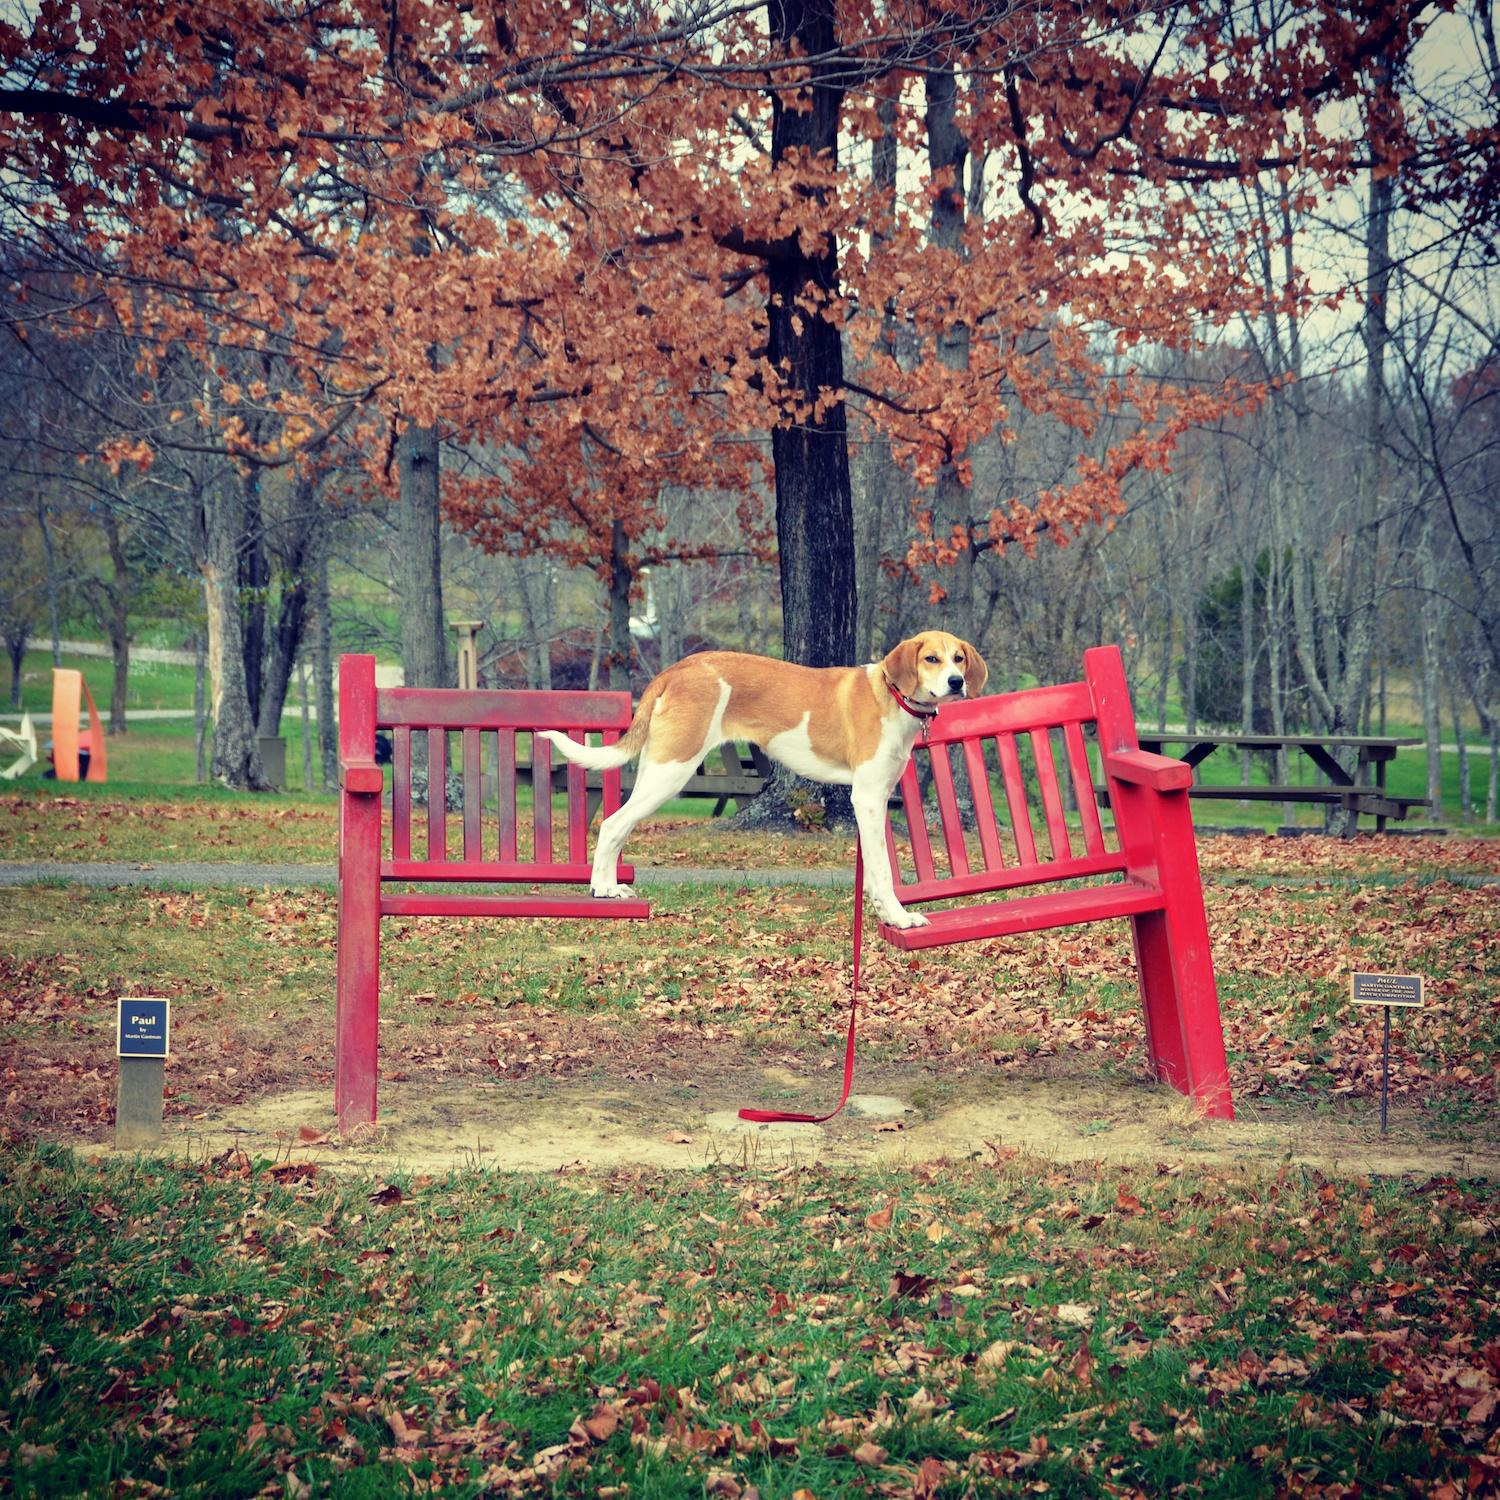 LOCATION: Pyramid Hill / Mollie is a local Instagram celebrity. Famous for posing on fire hydrants in front of ArtWorks murals (and other Cincy landmarks), this hound dog has officially stolen our hearts. You can follow her adventures on Instagram @molliethehounddoggie / Image: Patti Mossey (Mollie's owner and #1 fan) // Published: 5.1.18